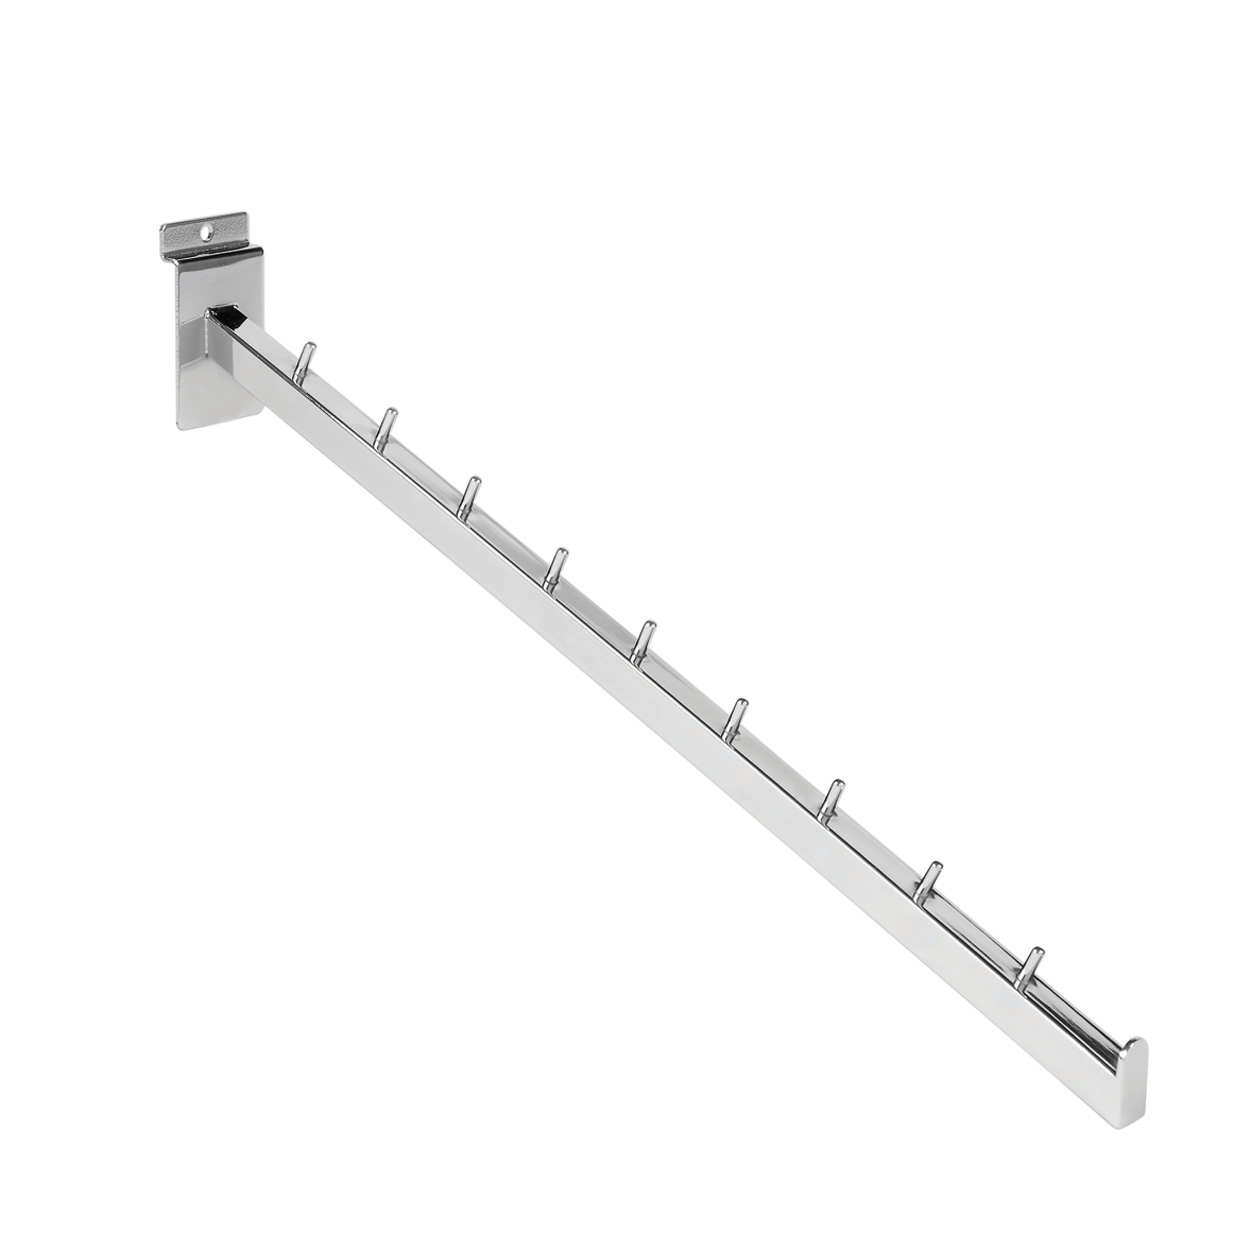 Waterfall Arm 460 mm With 9 Pins 495mm